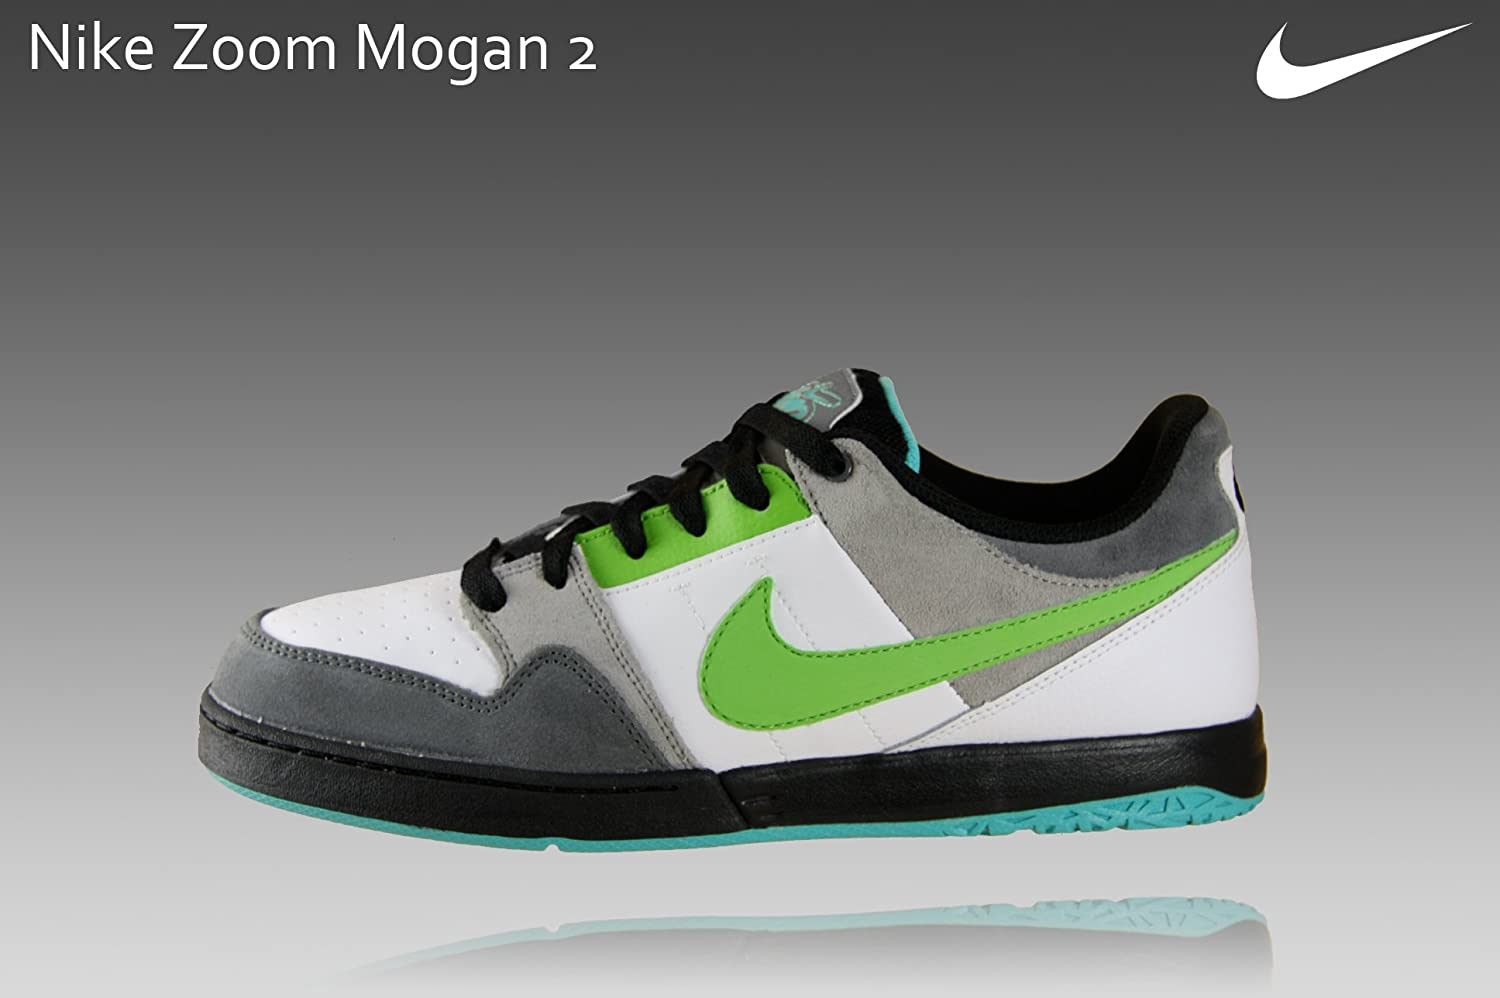 quality discount official images Nike 6.0 Zoom Mogan 2 Shoes - Nano Grey/Sprinter Green: Amazon.co ...